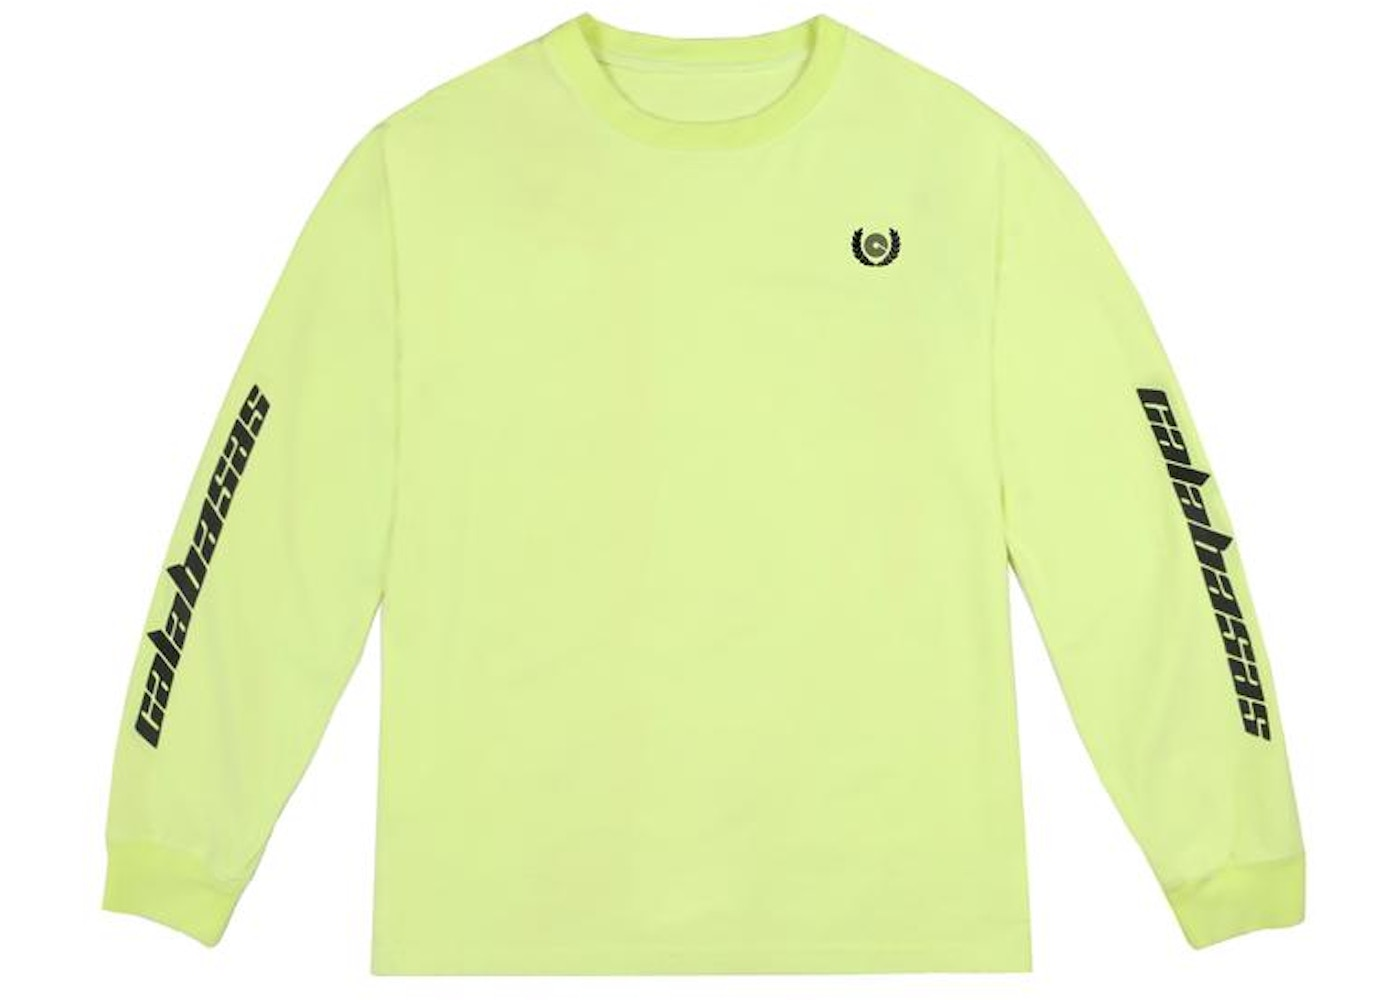 half off 617d5 c7722 Yeezy Calabasas Long Sleeves